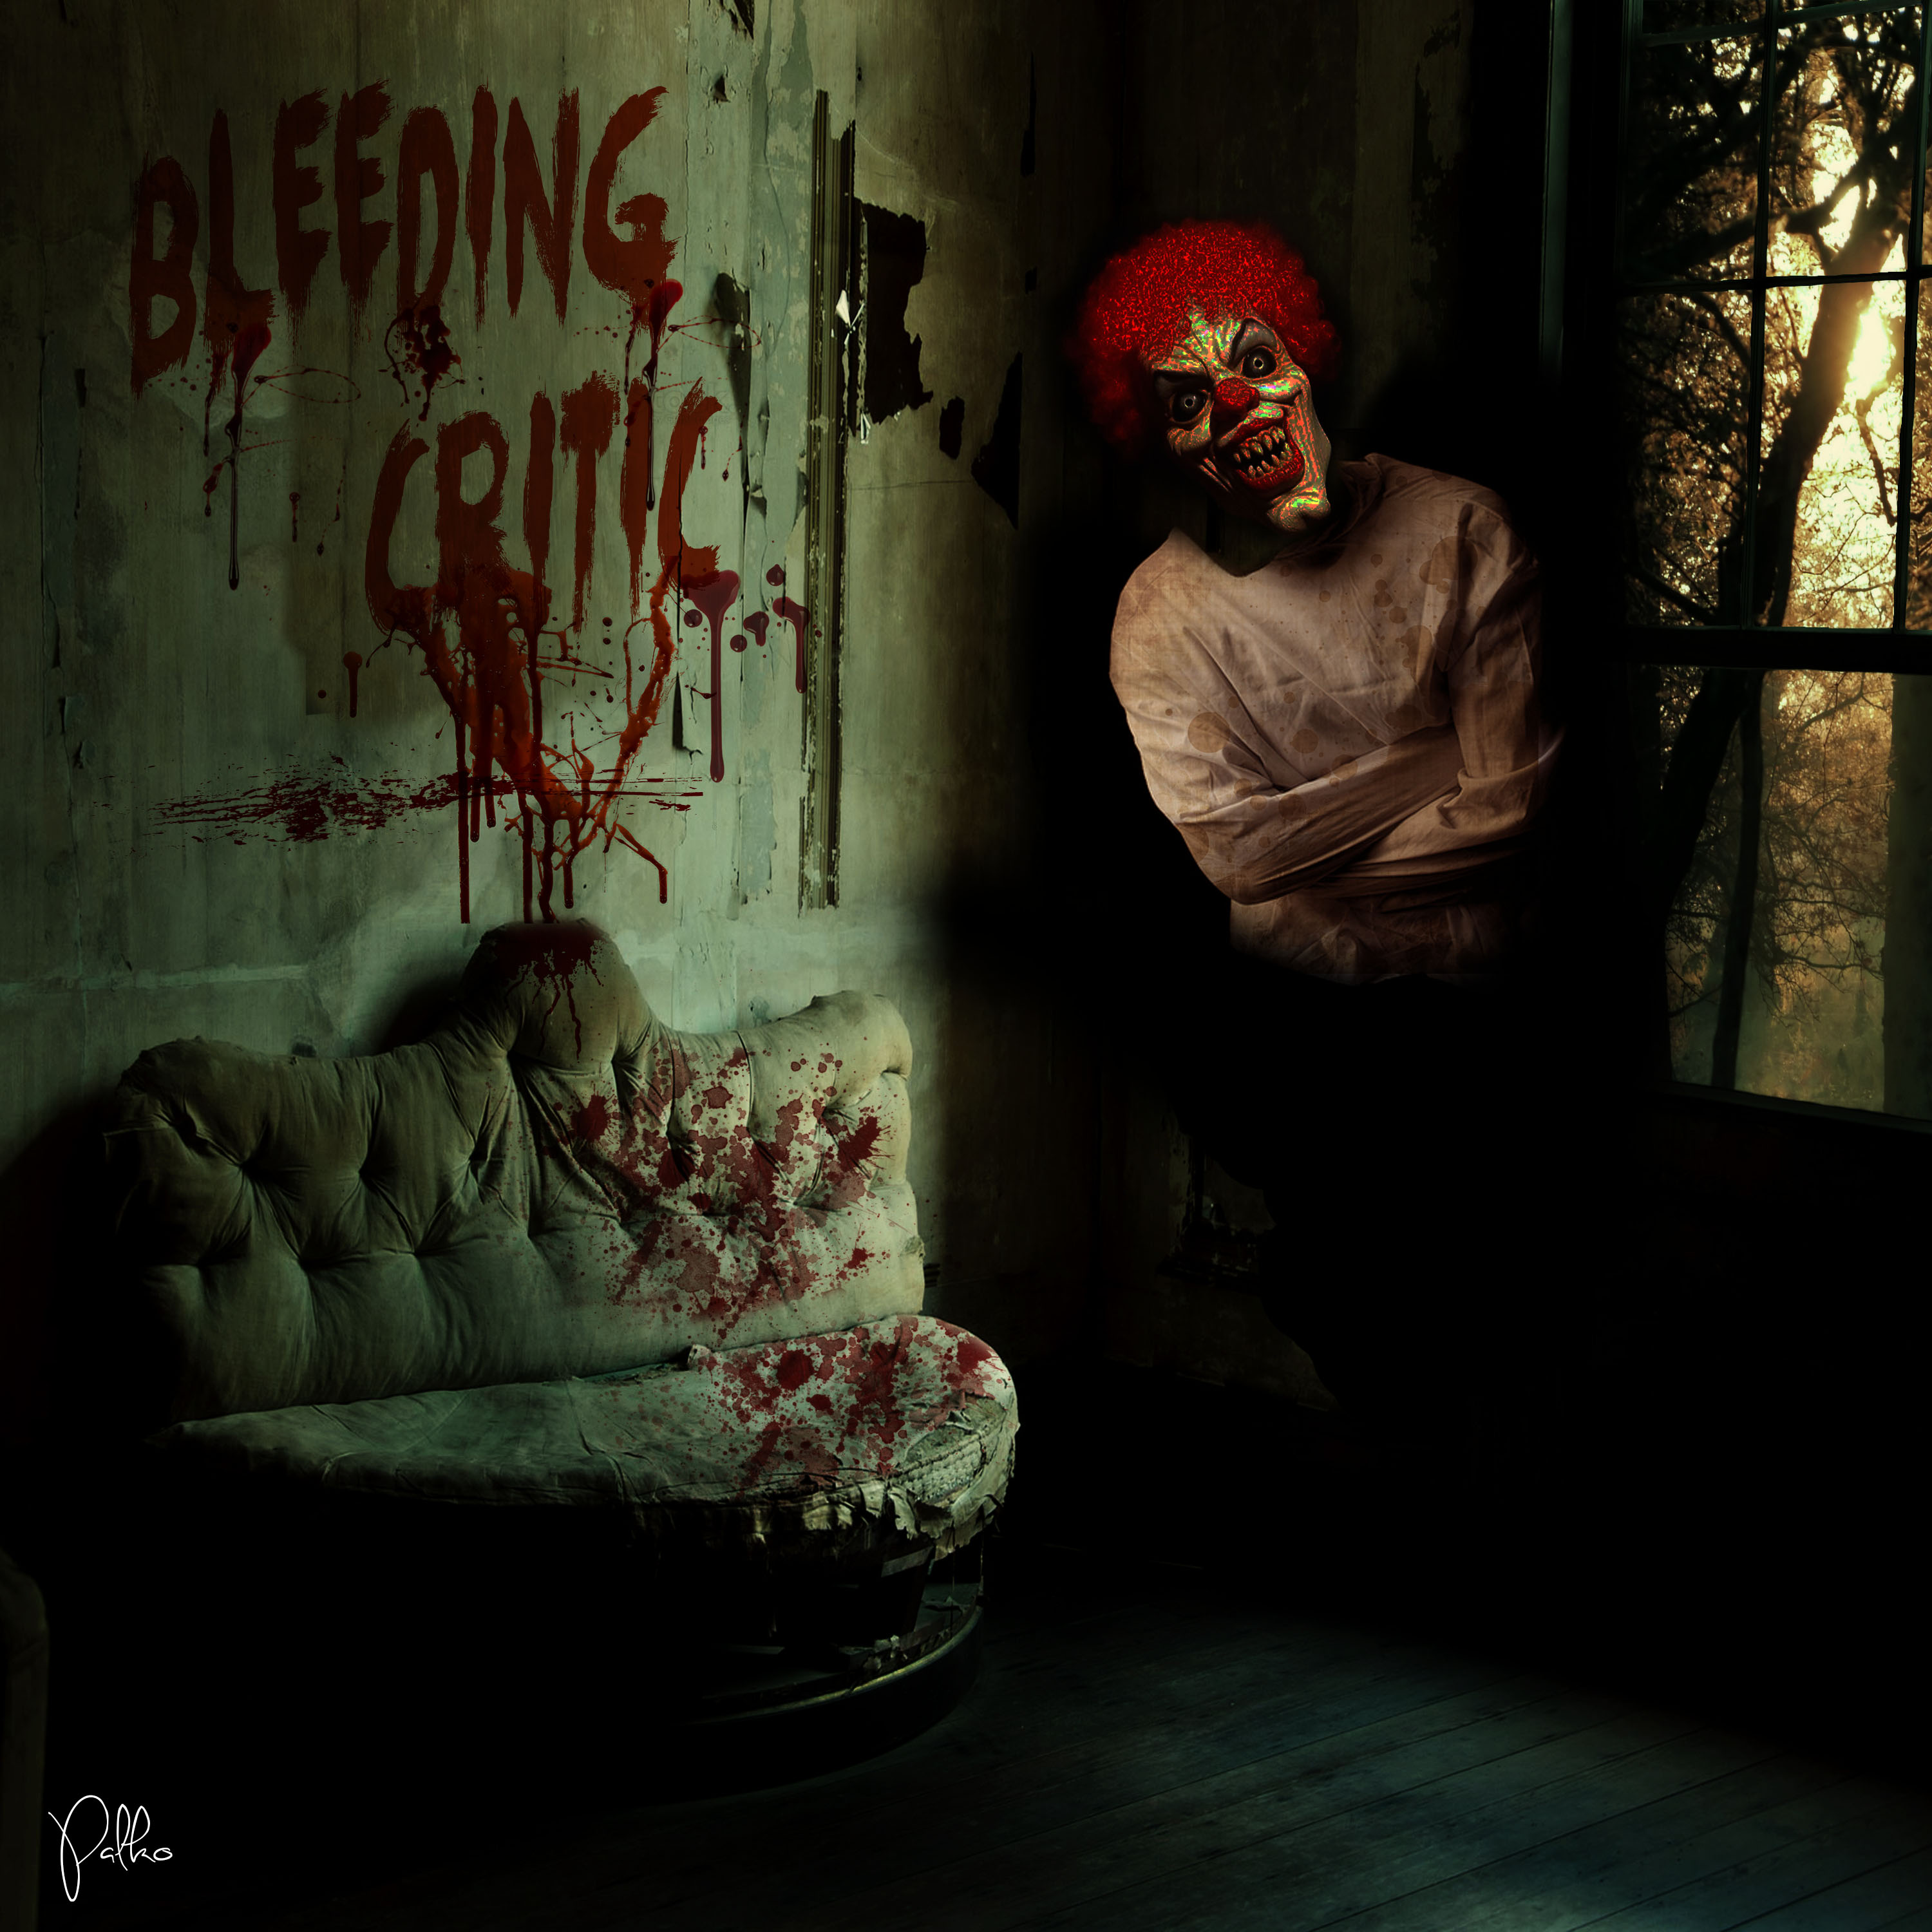 Bleeding Critic Promo